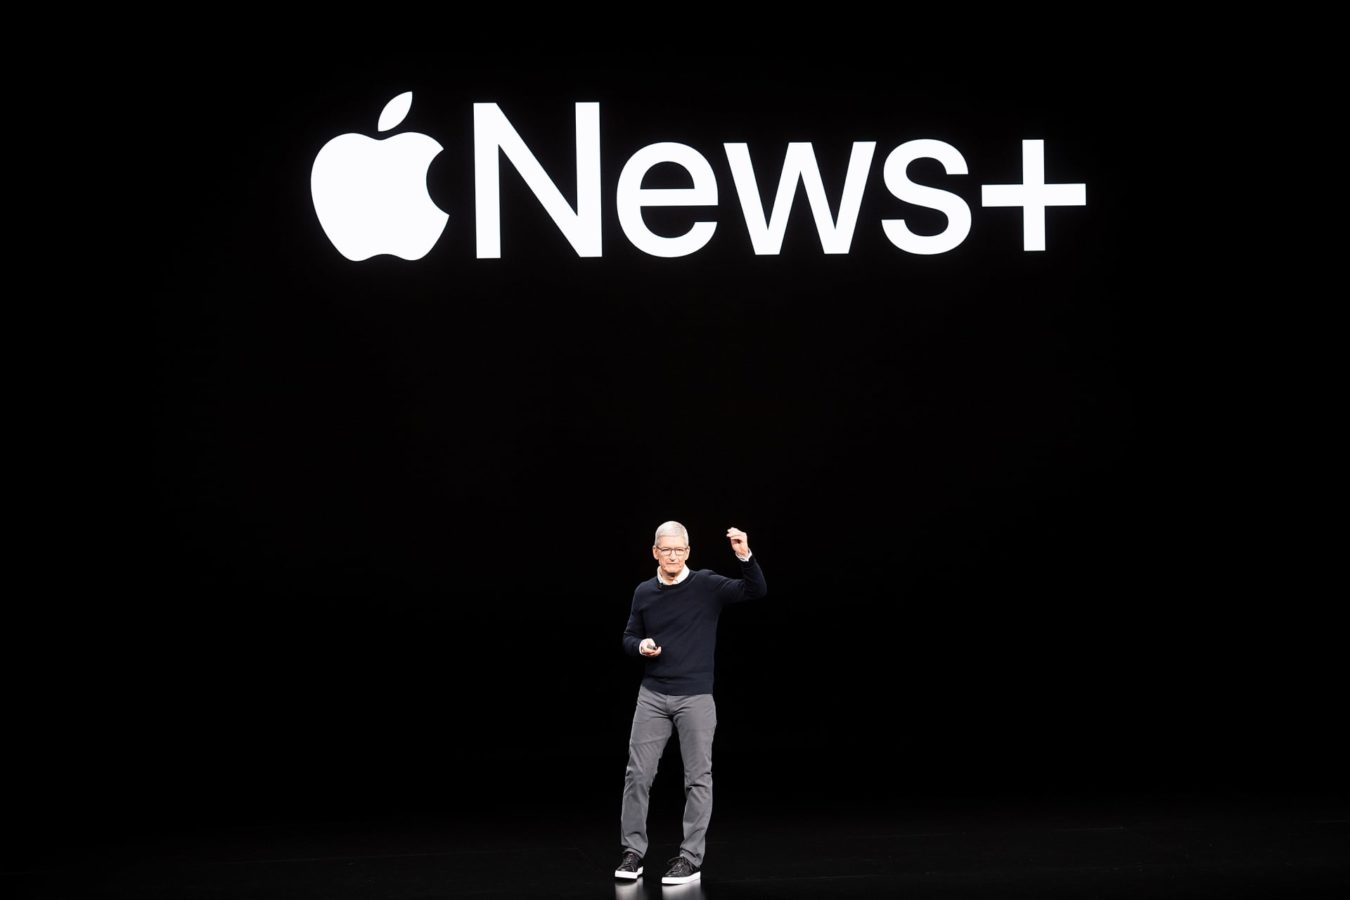 Everything you need to know about Apple's newly-launched news podcast